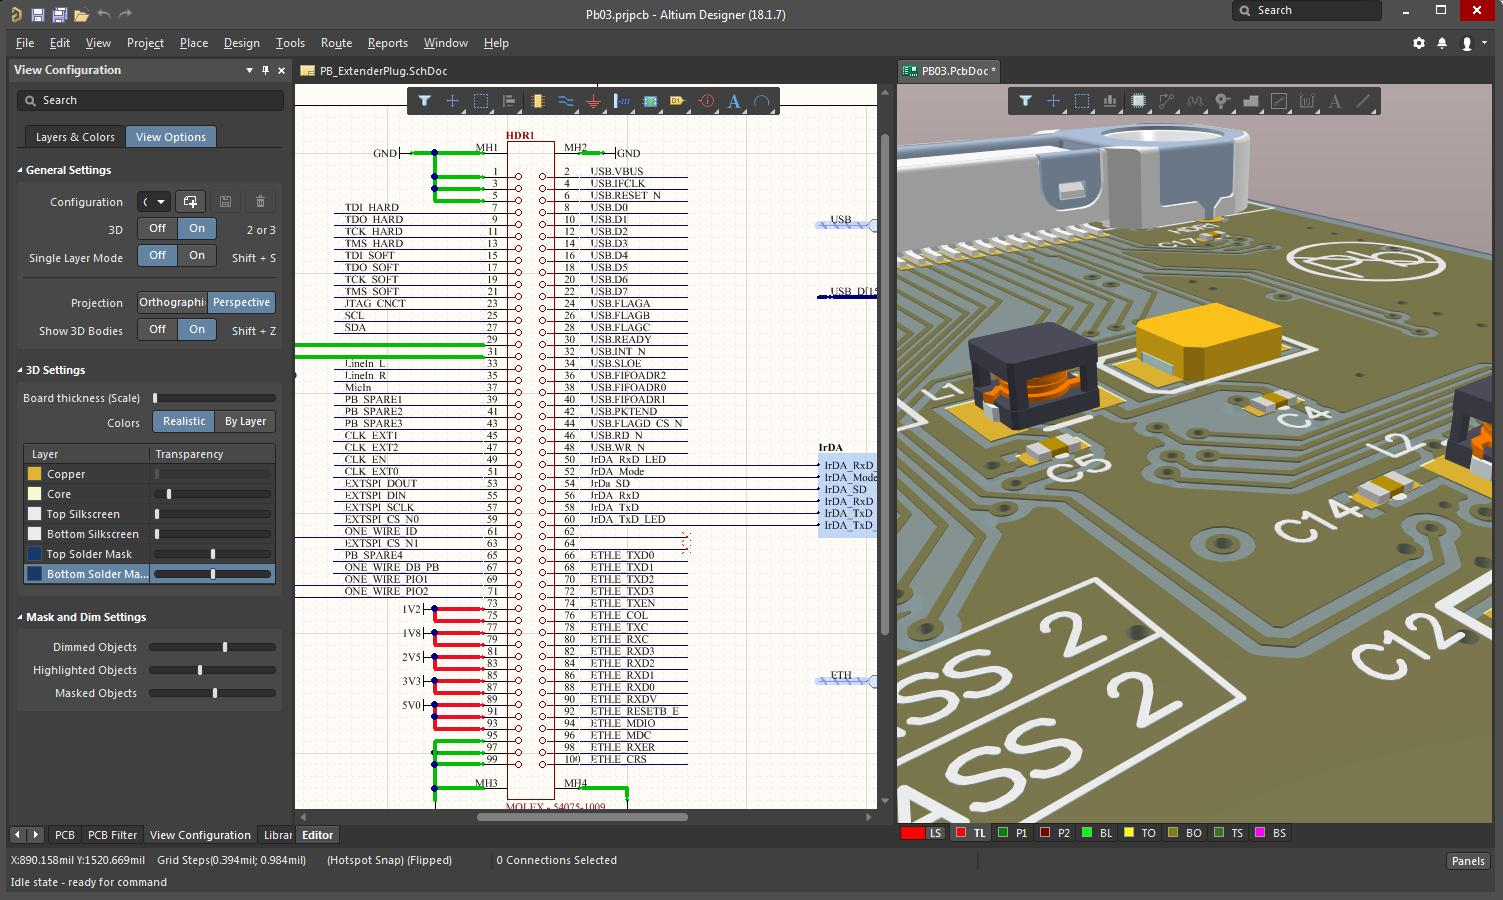 Screenshot of AD18 schematic and 3D layout in printed circuit board design software